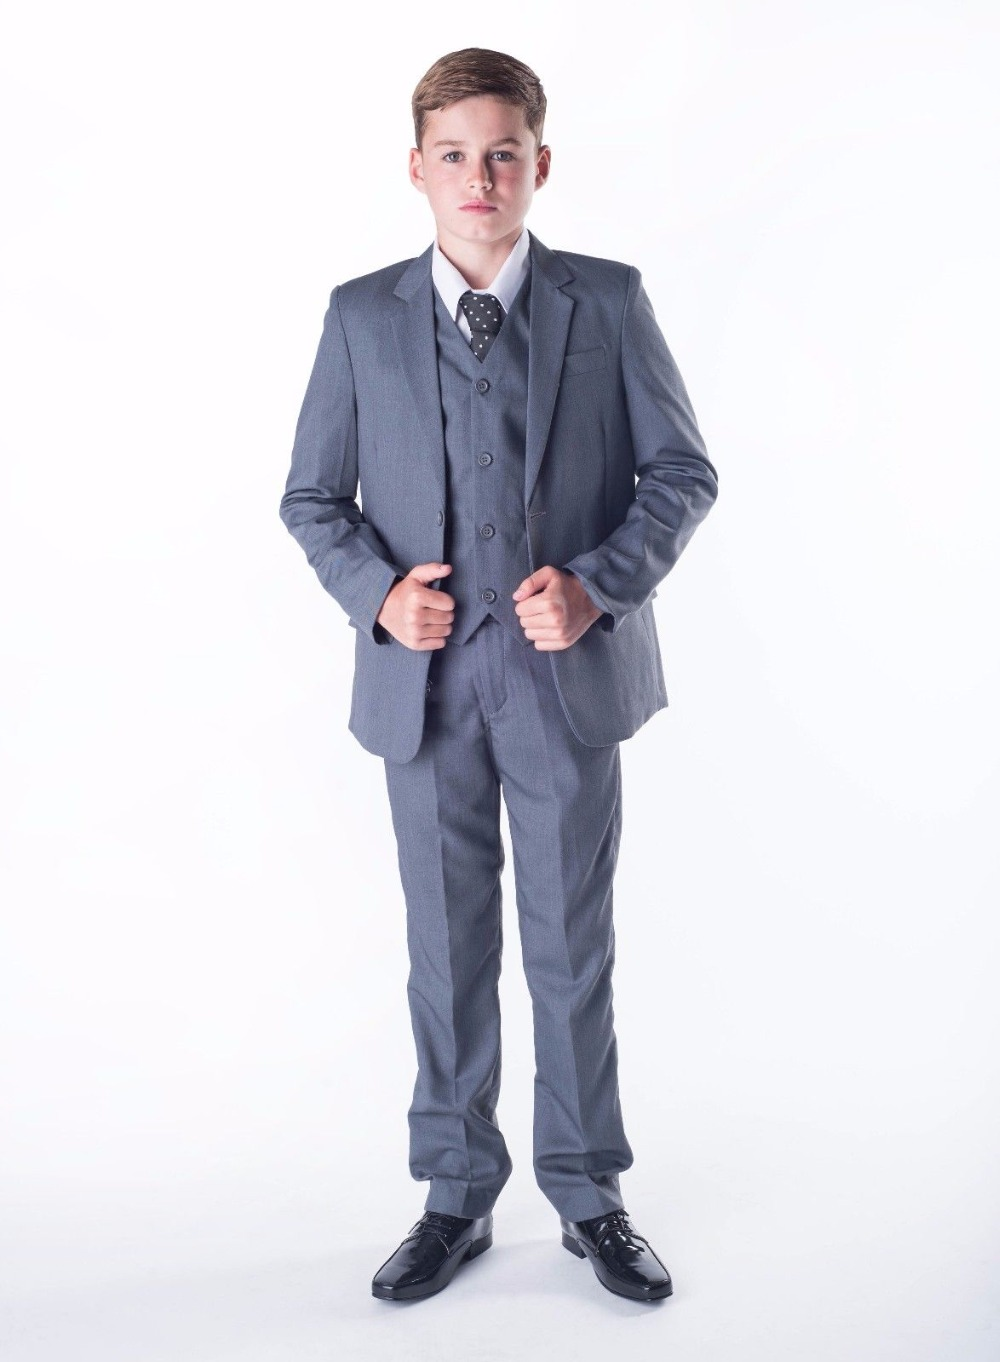 Boys Suits 3 Piece Wedding Suit Prom Page Boy Baby Formal Party 3 Colours серьги page 3